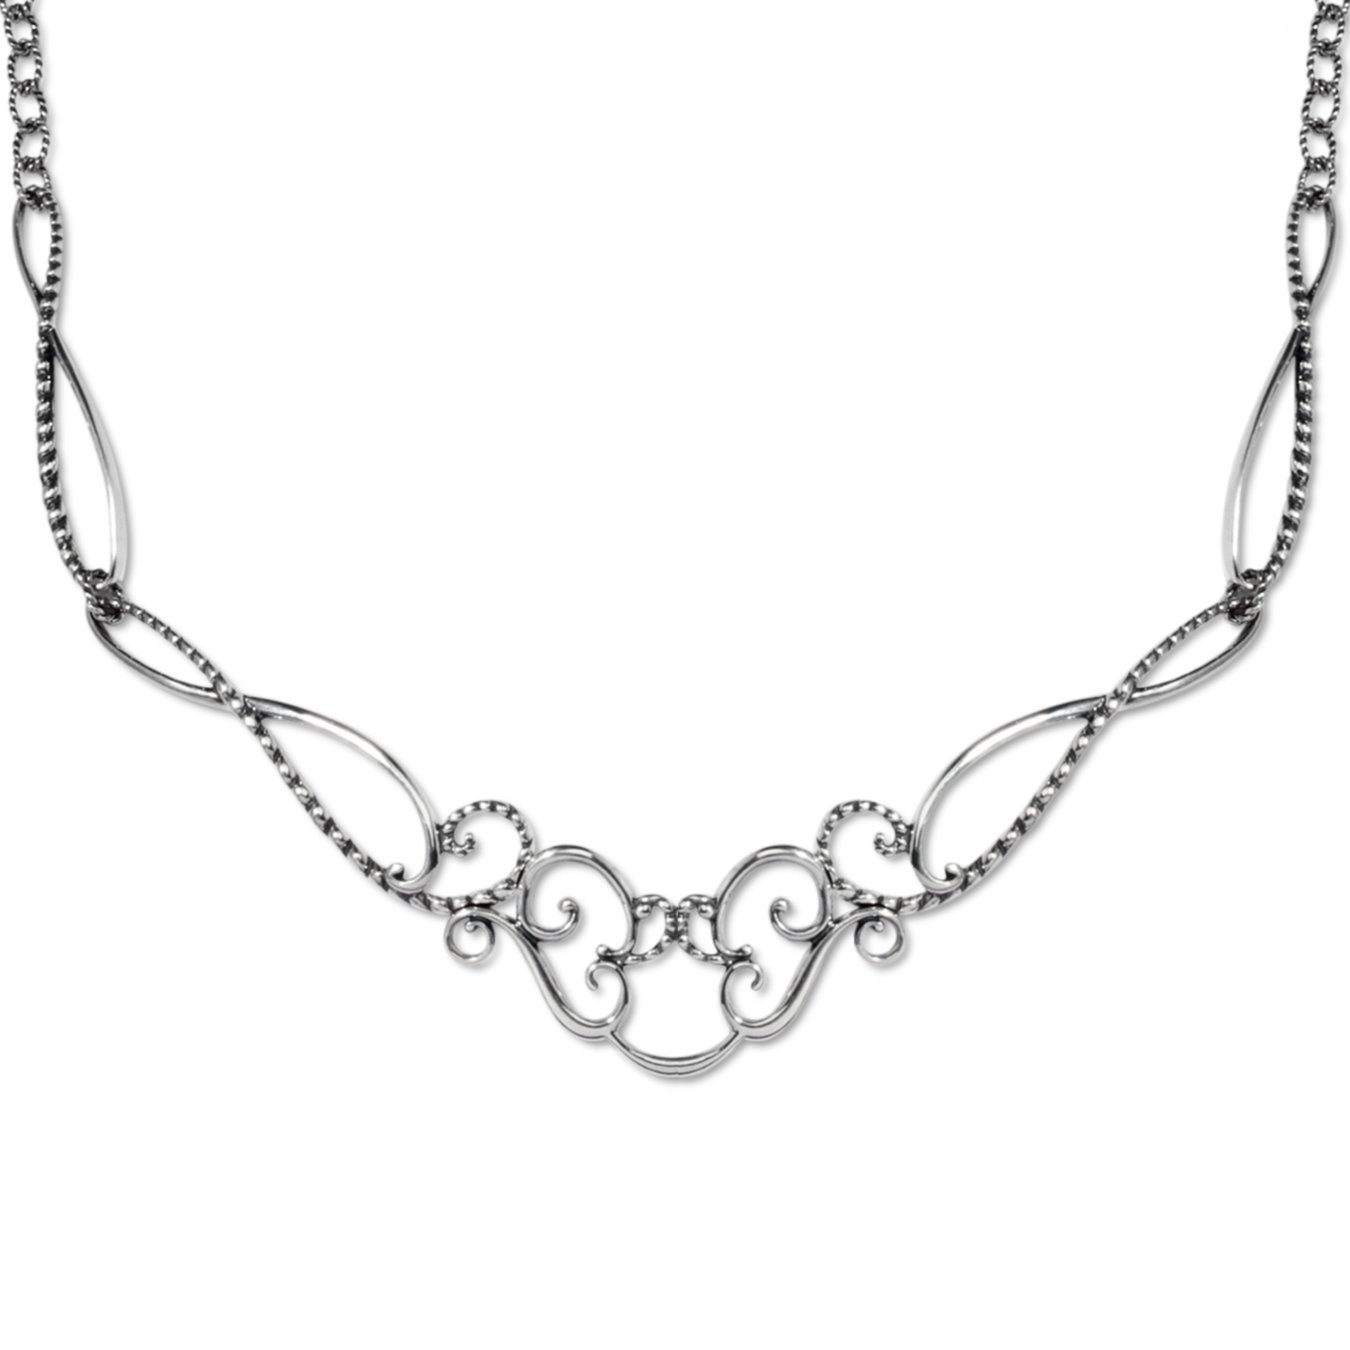 Carolyn Pollack Sterling Silver Statement Necklace